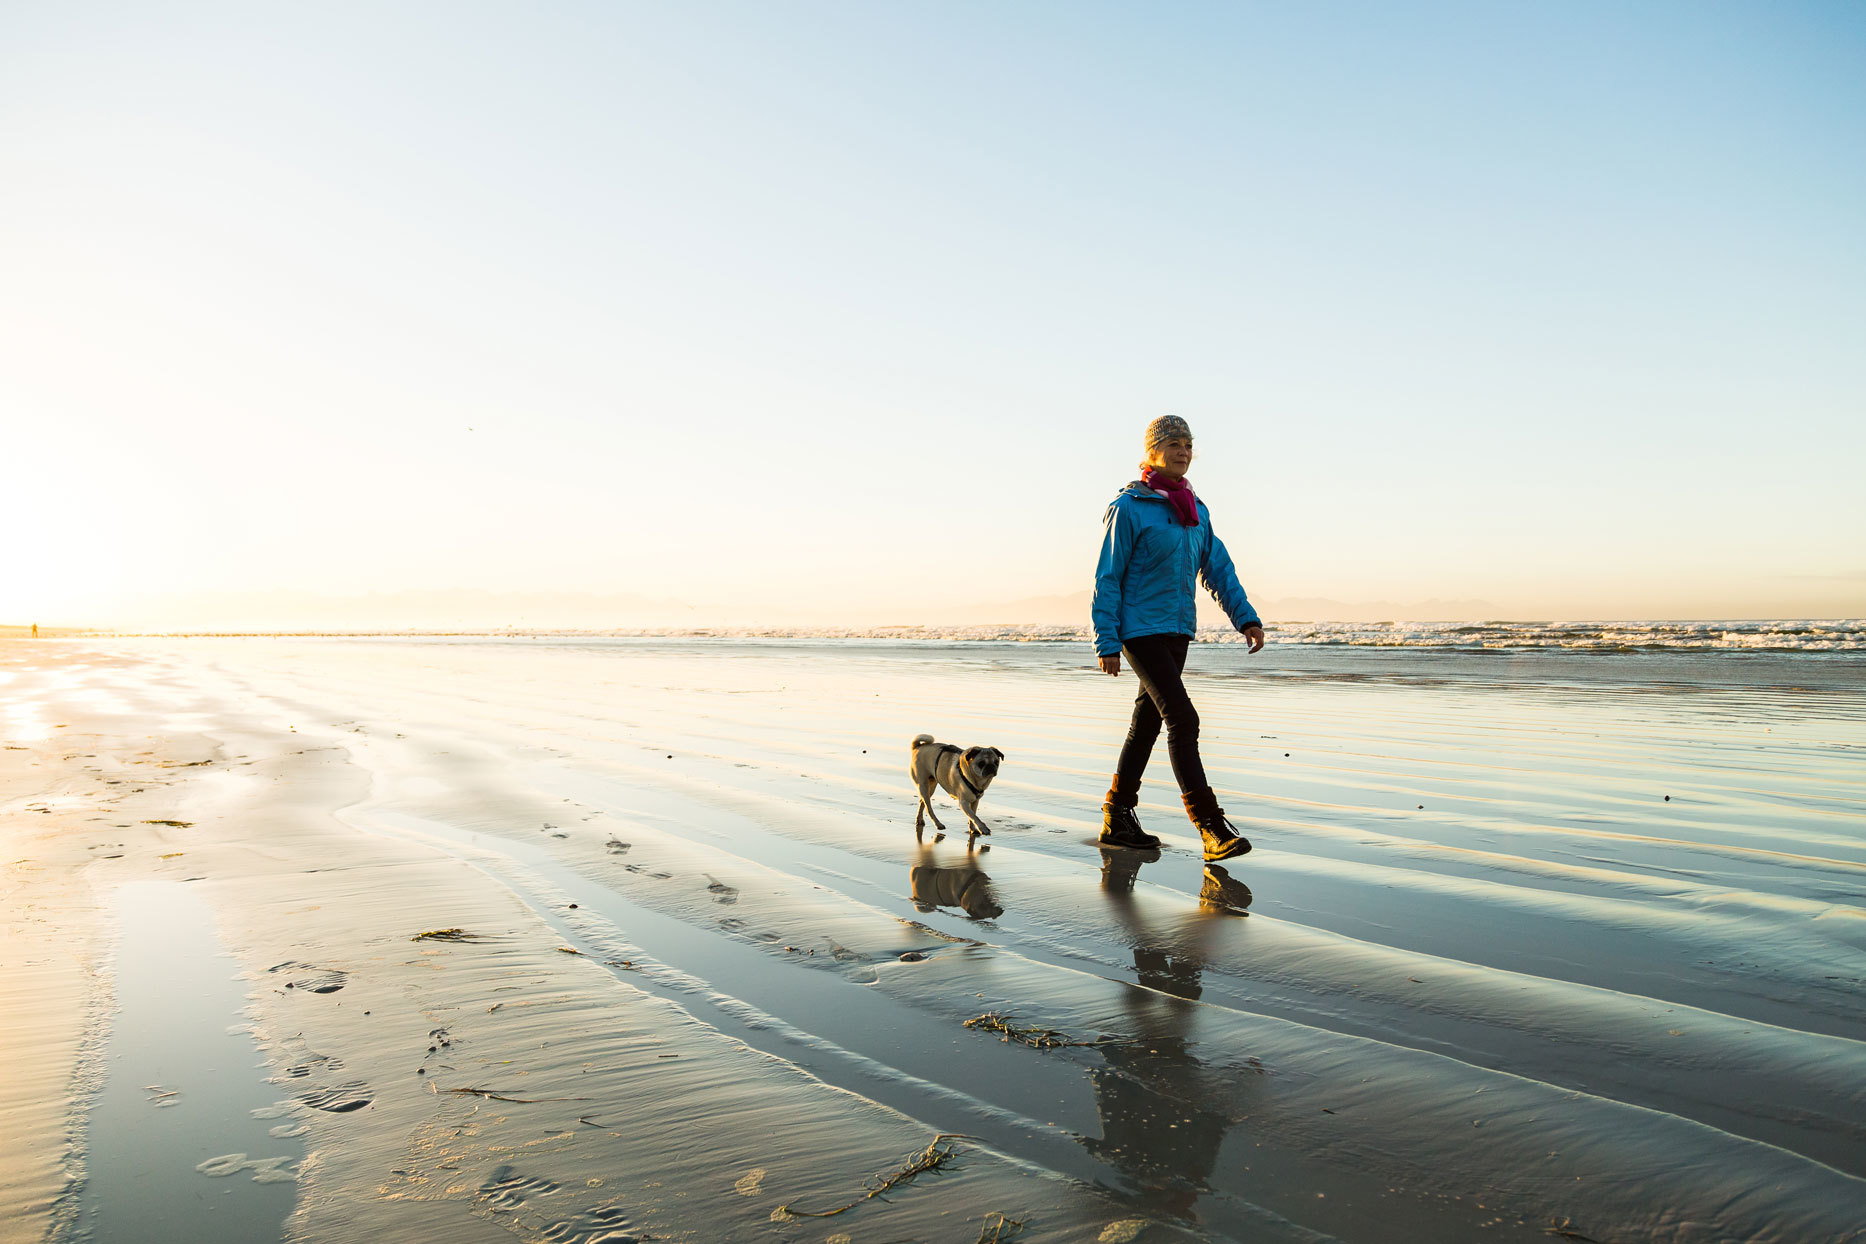 Woman walking on a beach with a dog